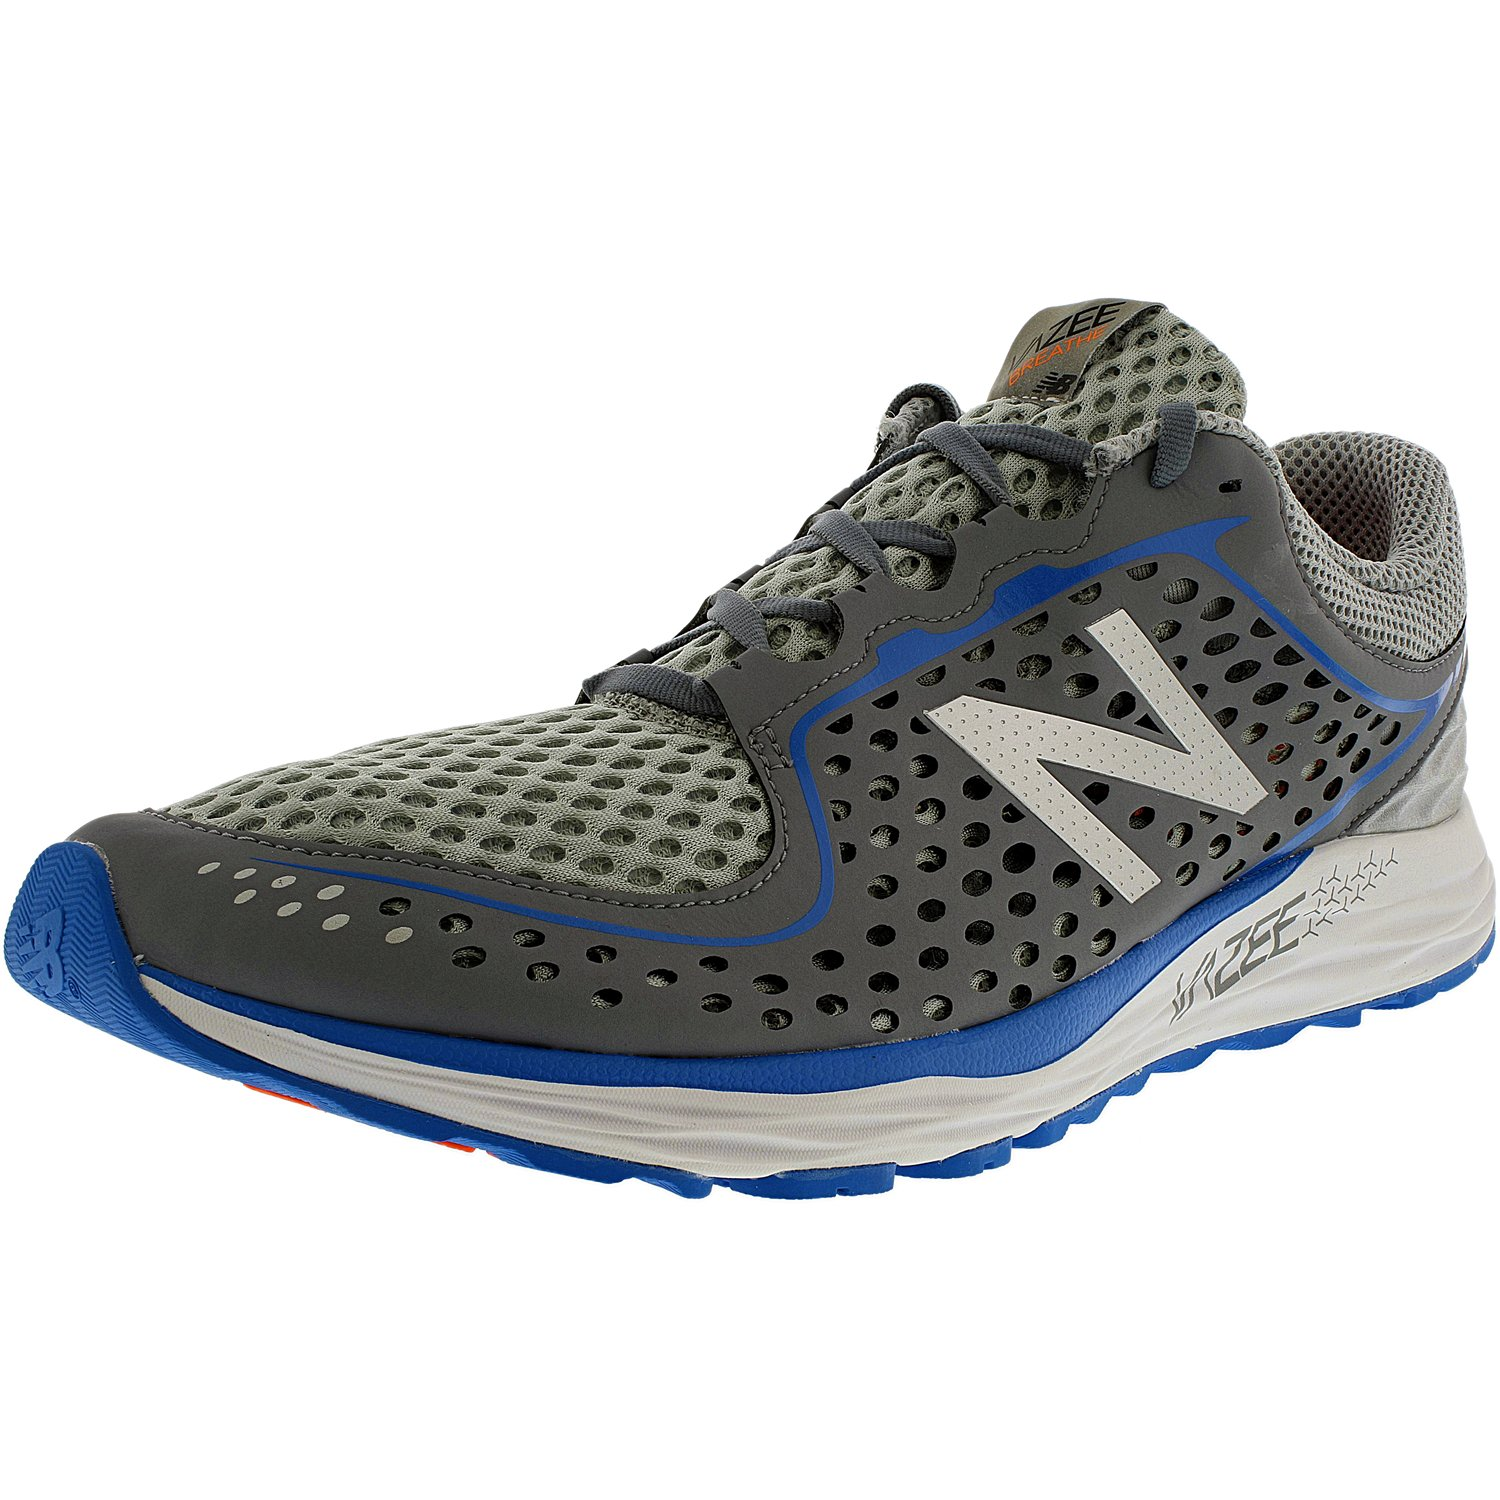 New Balance Men's Mbre Ahg2 Ankle-High Running Shoe 8M by New Balance